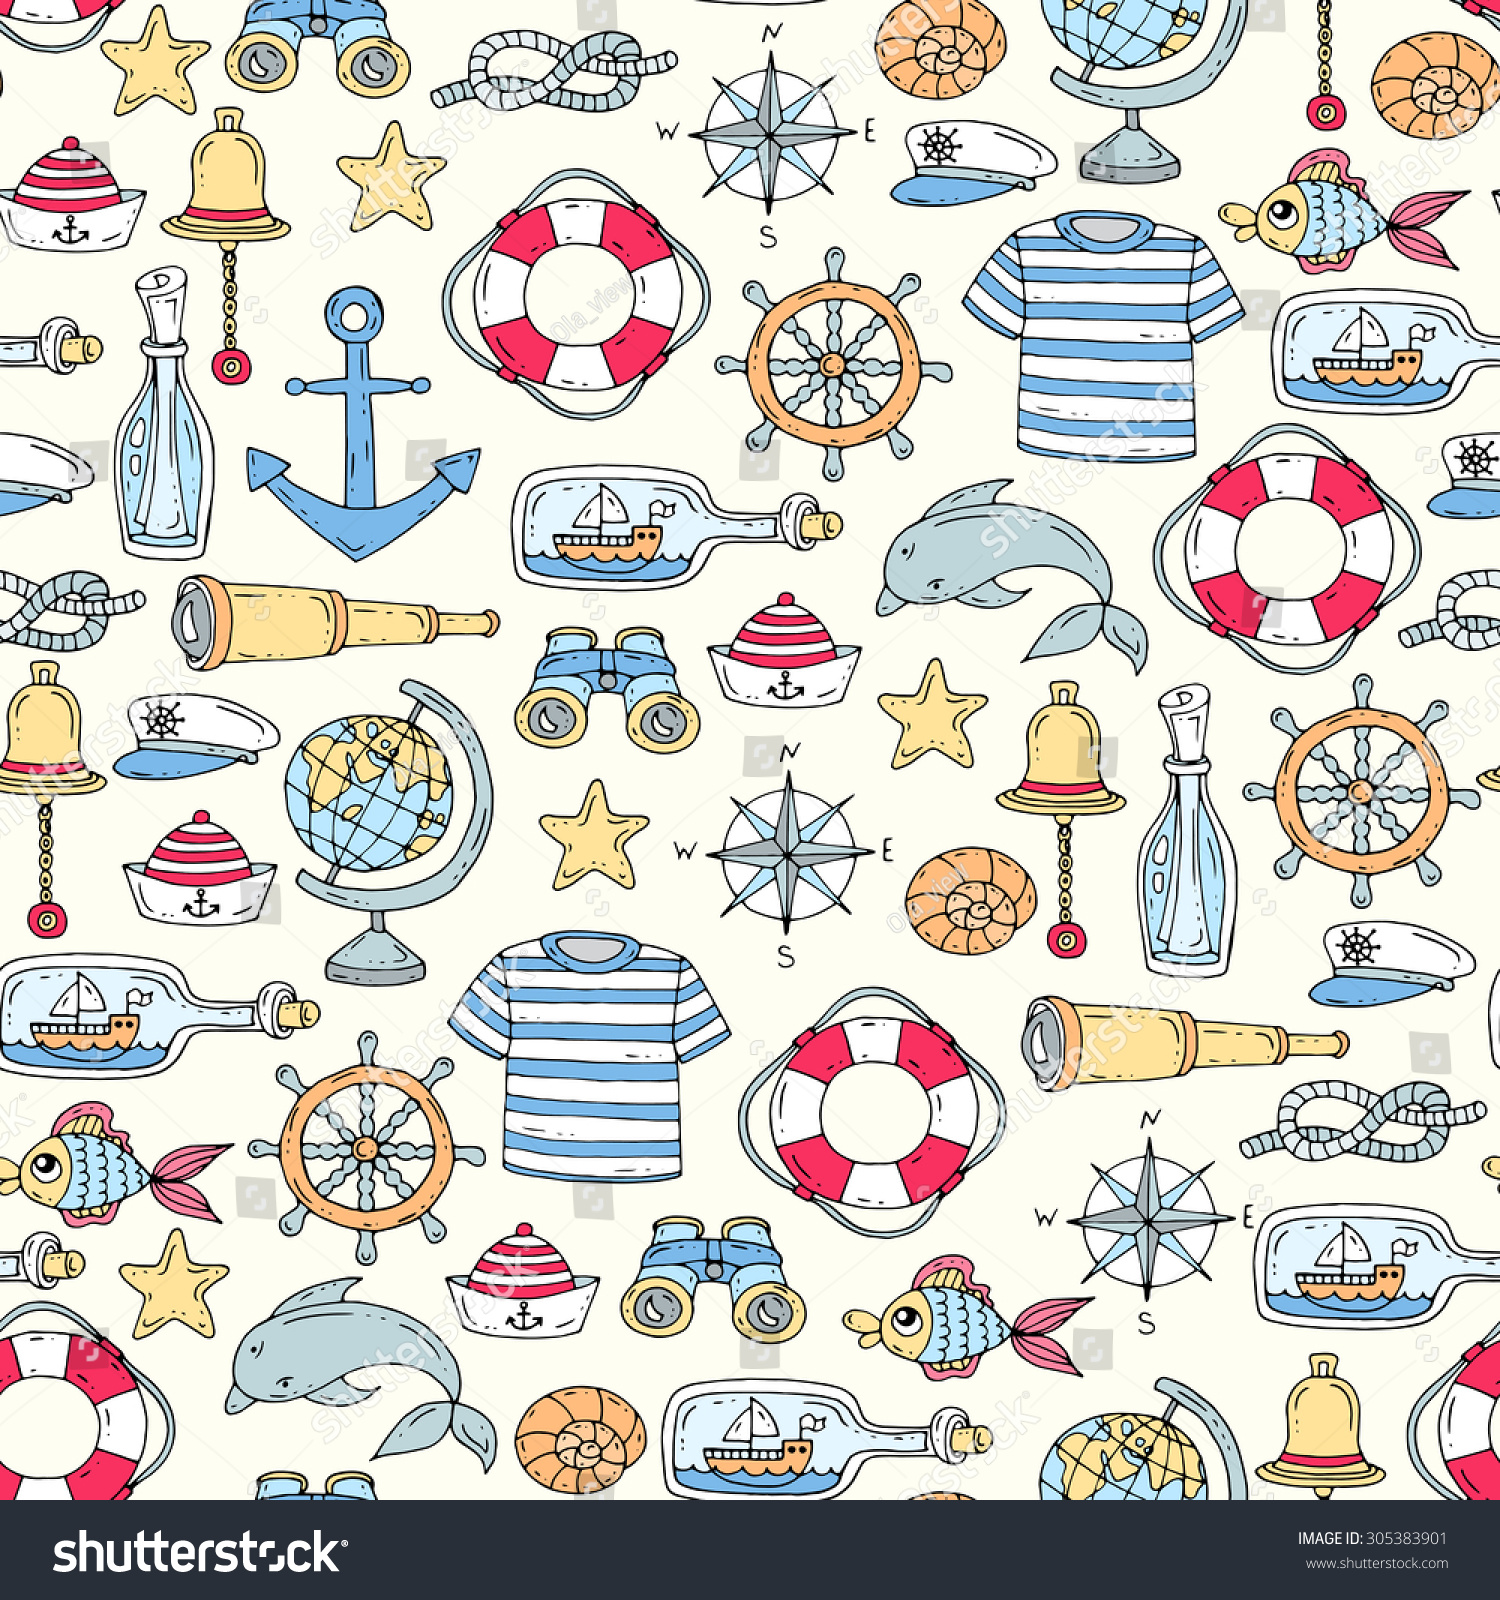 Anchor And Release Clothing >> Vector Seamless Pattern On Theme Sea Stock Vector 305383901 - Shutterstock